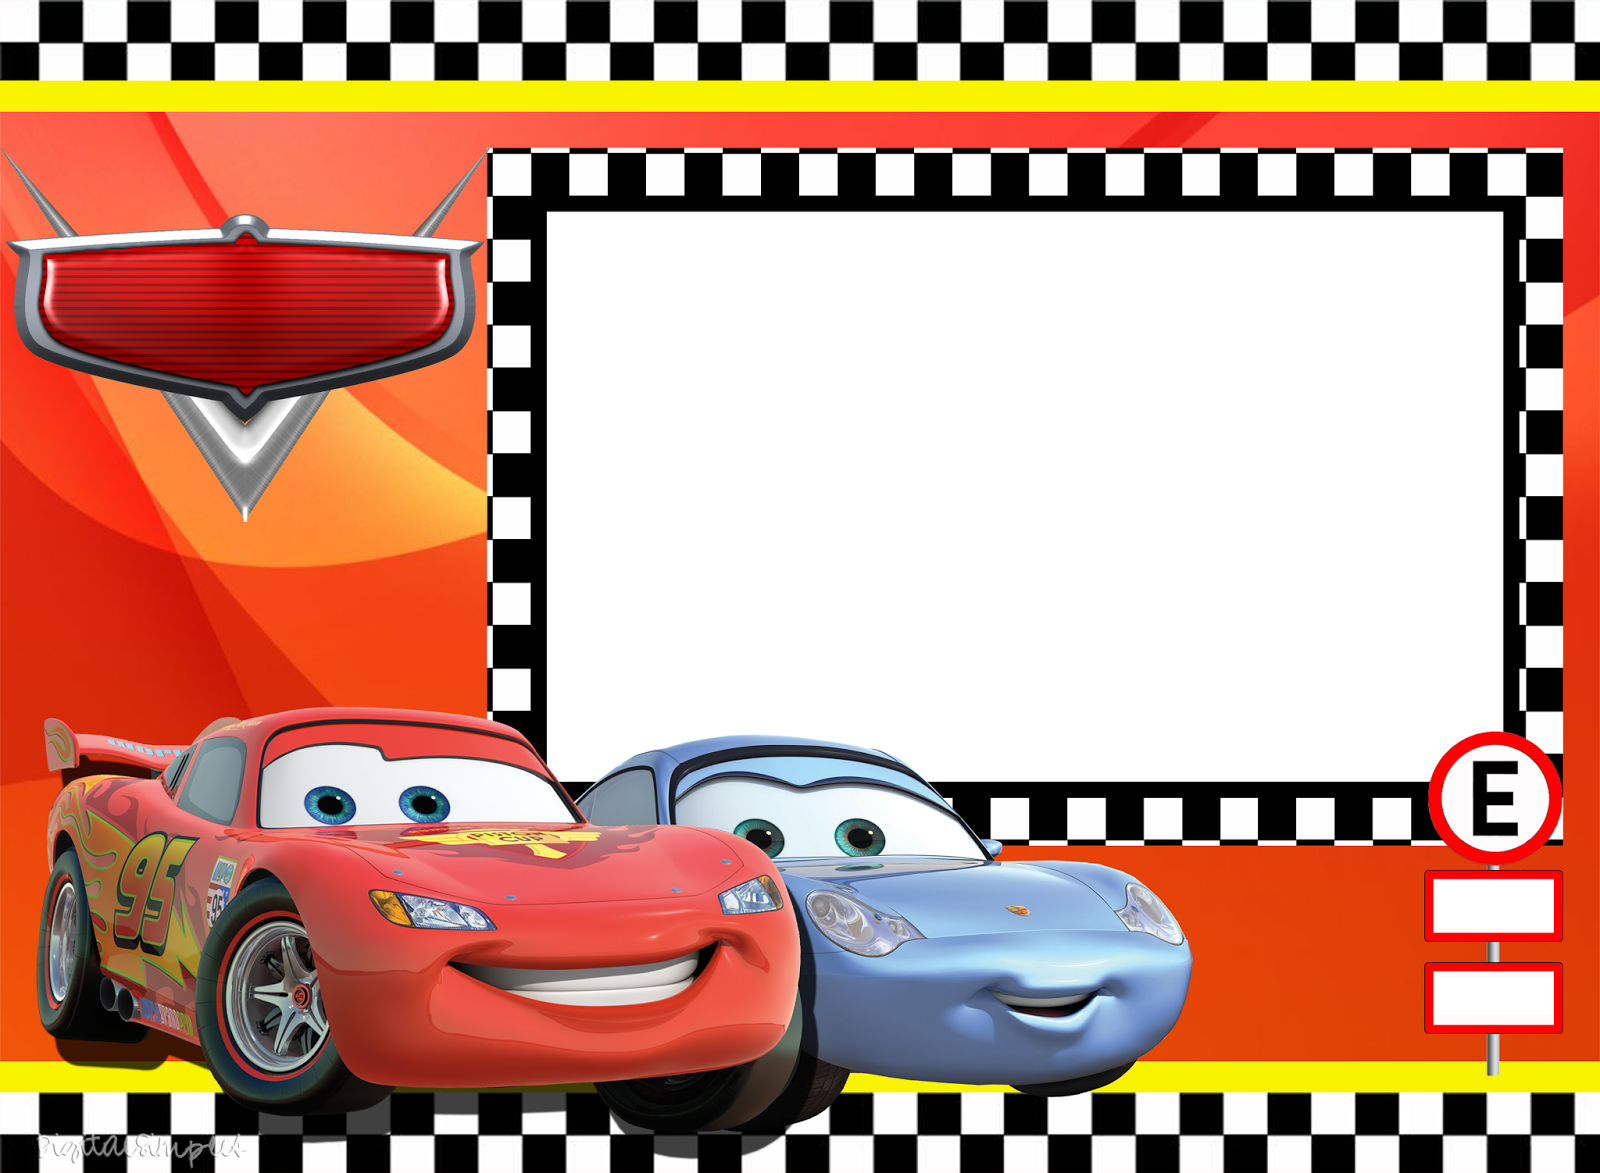 Kit para Fiestas de Cars para Imprimir Gratis Niños in 2019 Cars birthday invitations, Cars